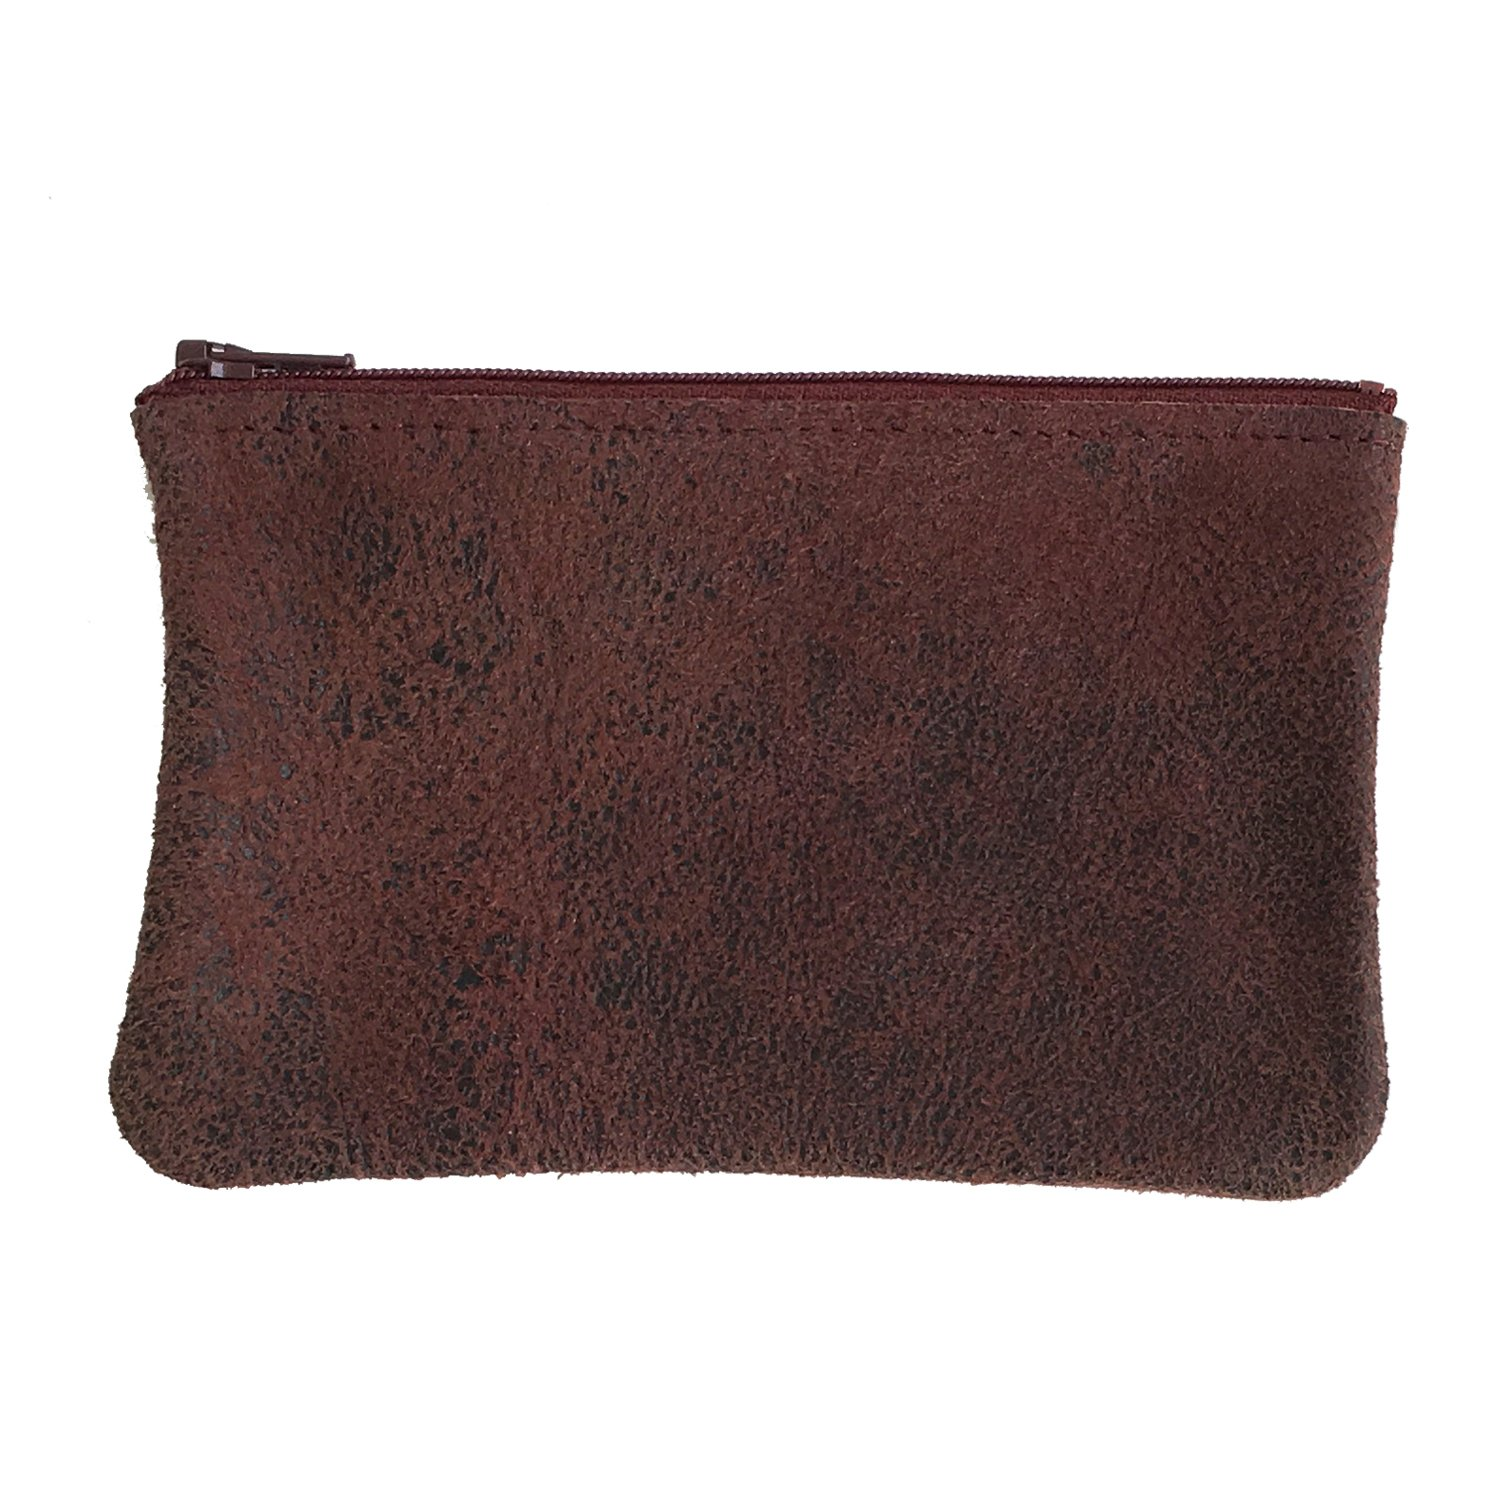 Tracey Tanner Small Zipper Top Pouch - Cabernet Distress